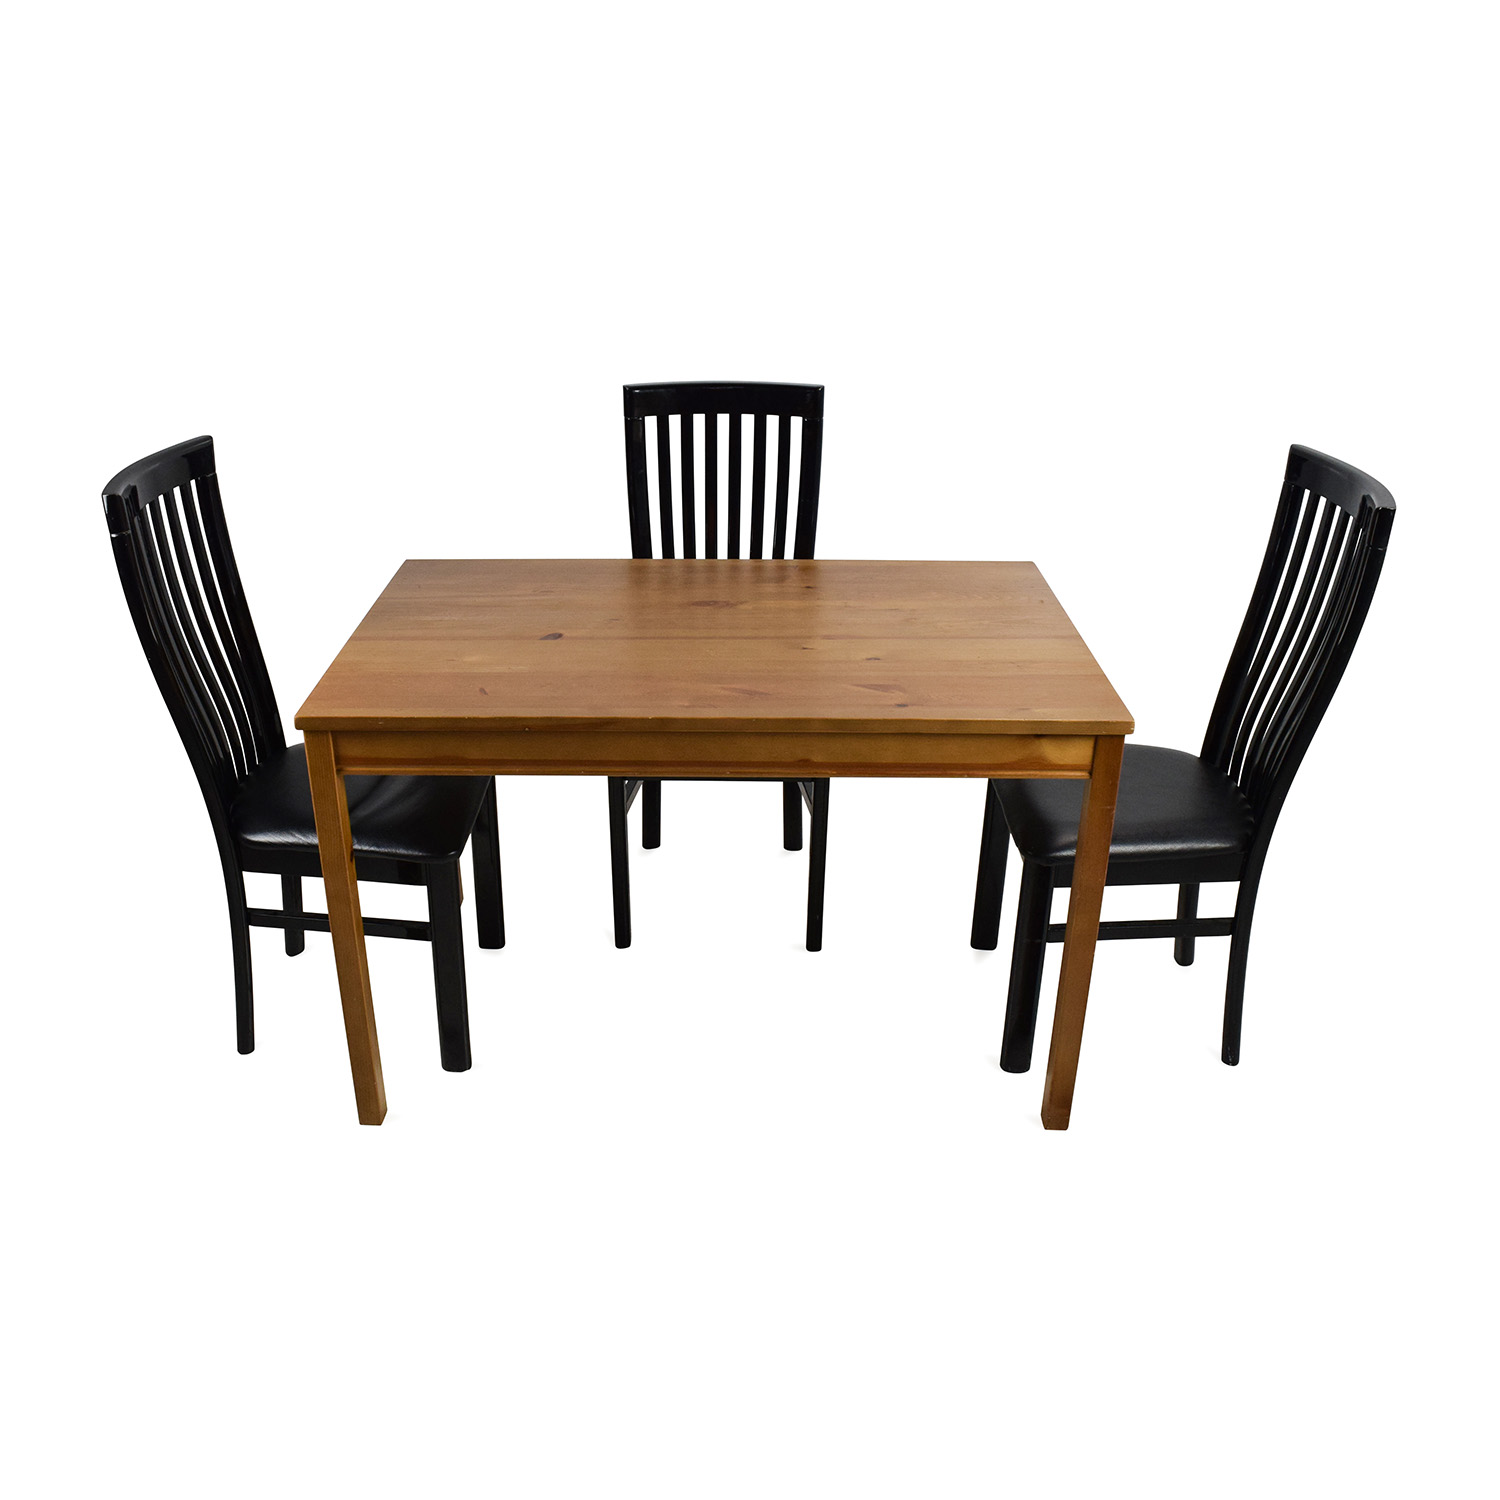 Philip Engel Philip Engel 3-Chair Dining Set